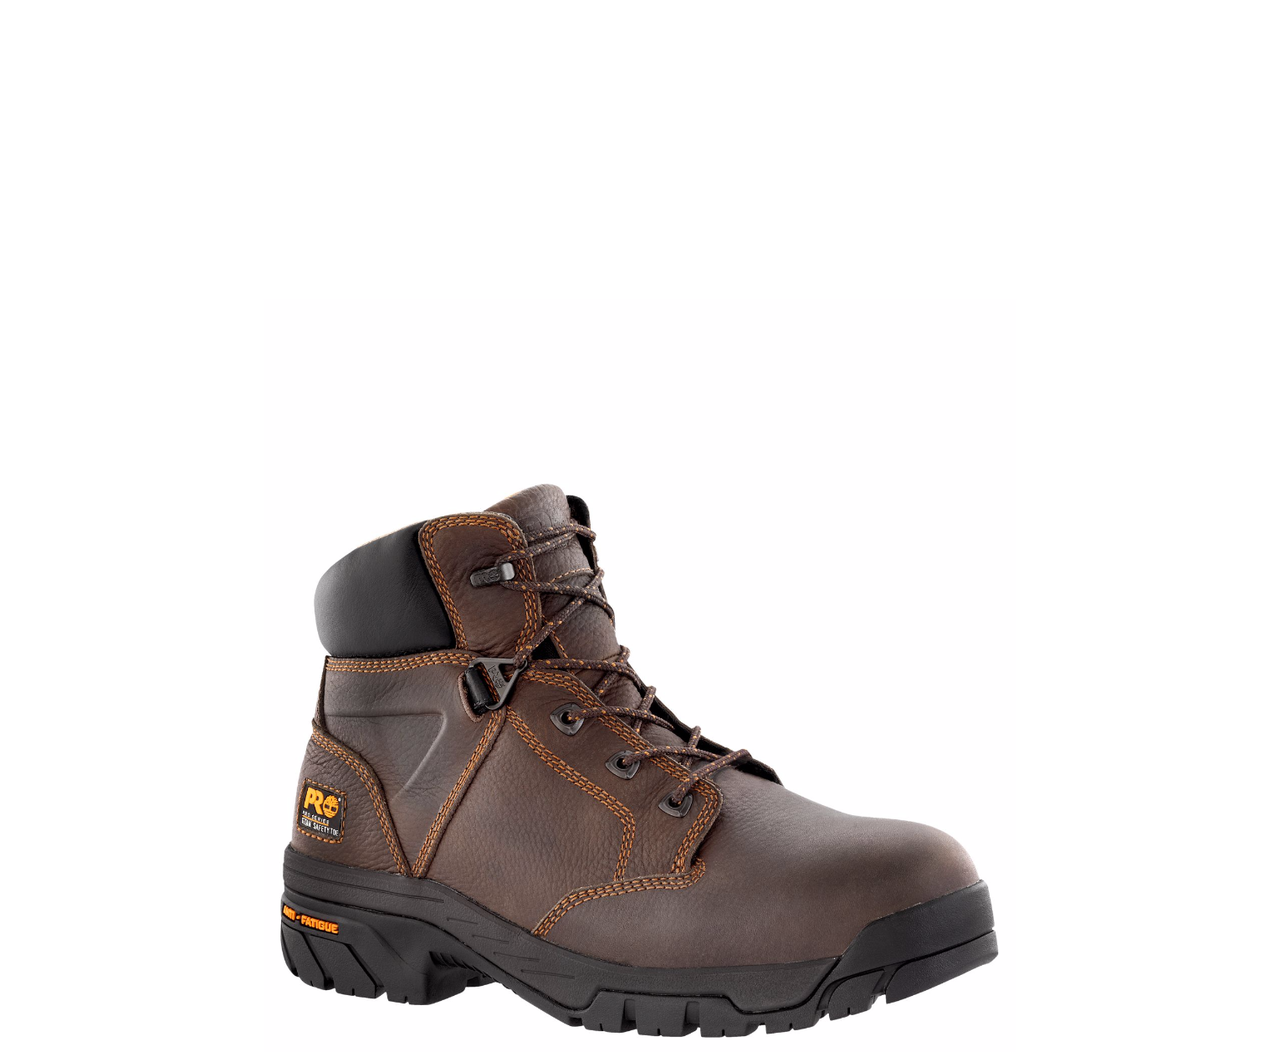 Timberland Pro Helix 6″ Brown Alloy Toe Work Boots